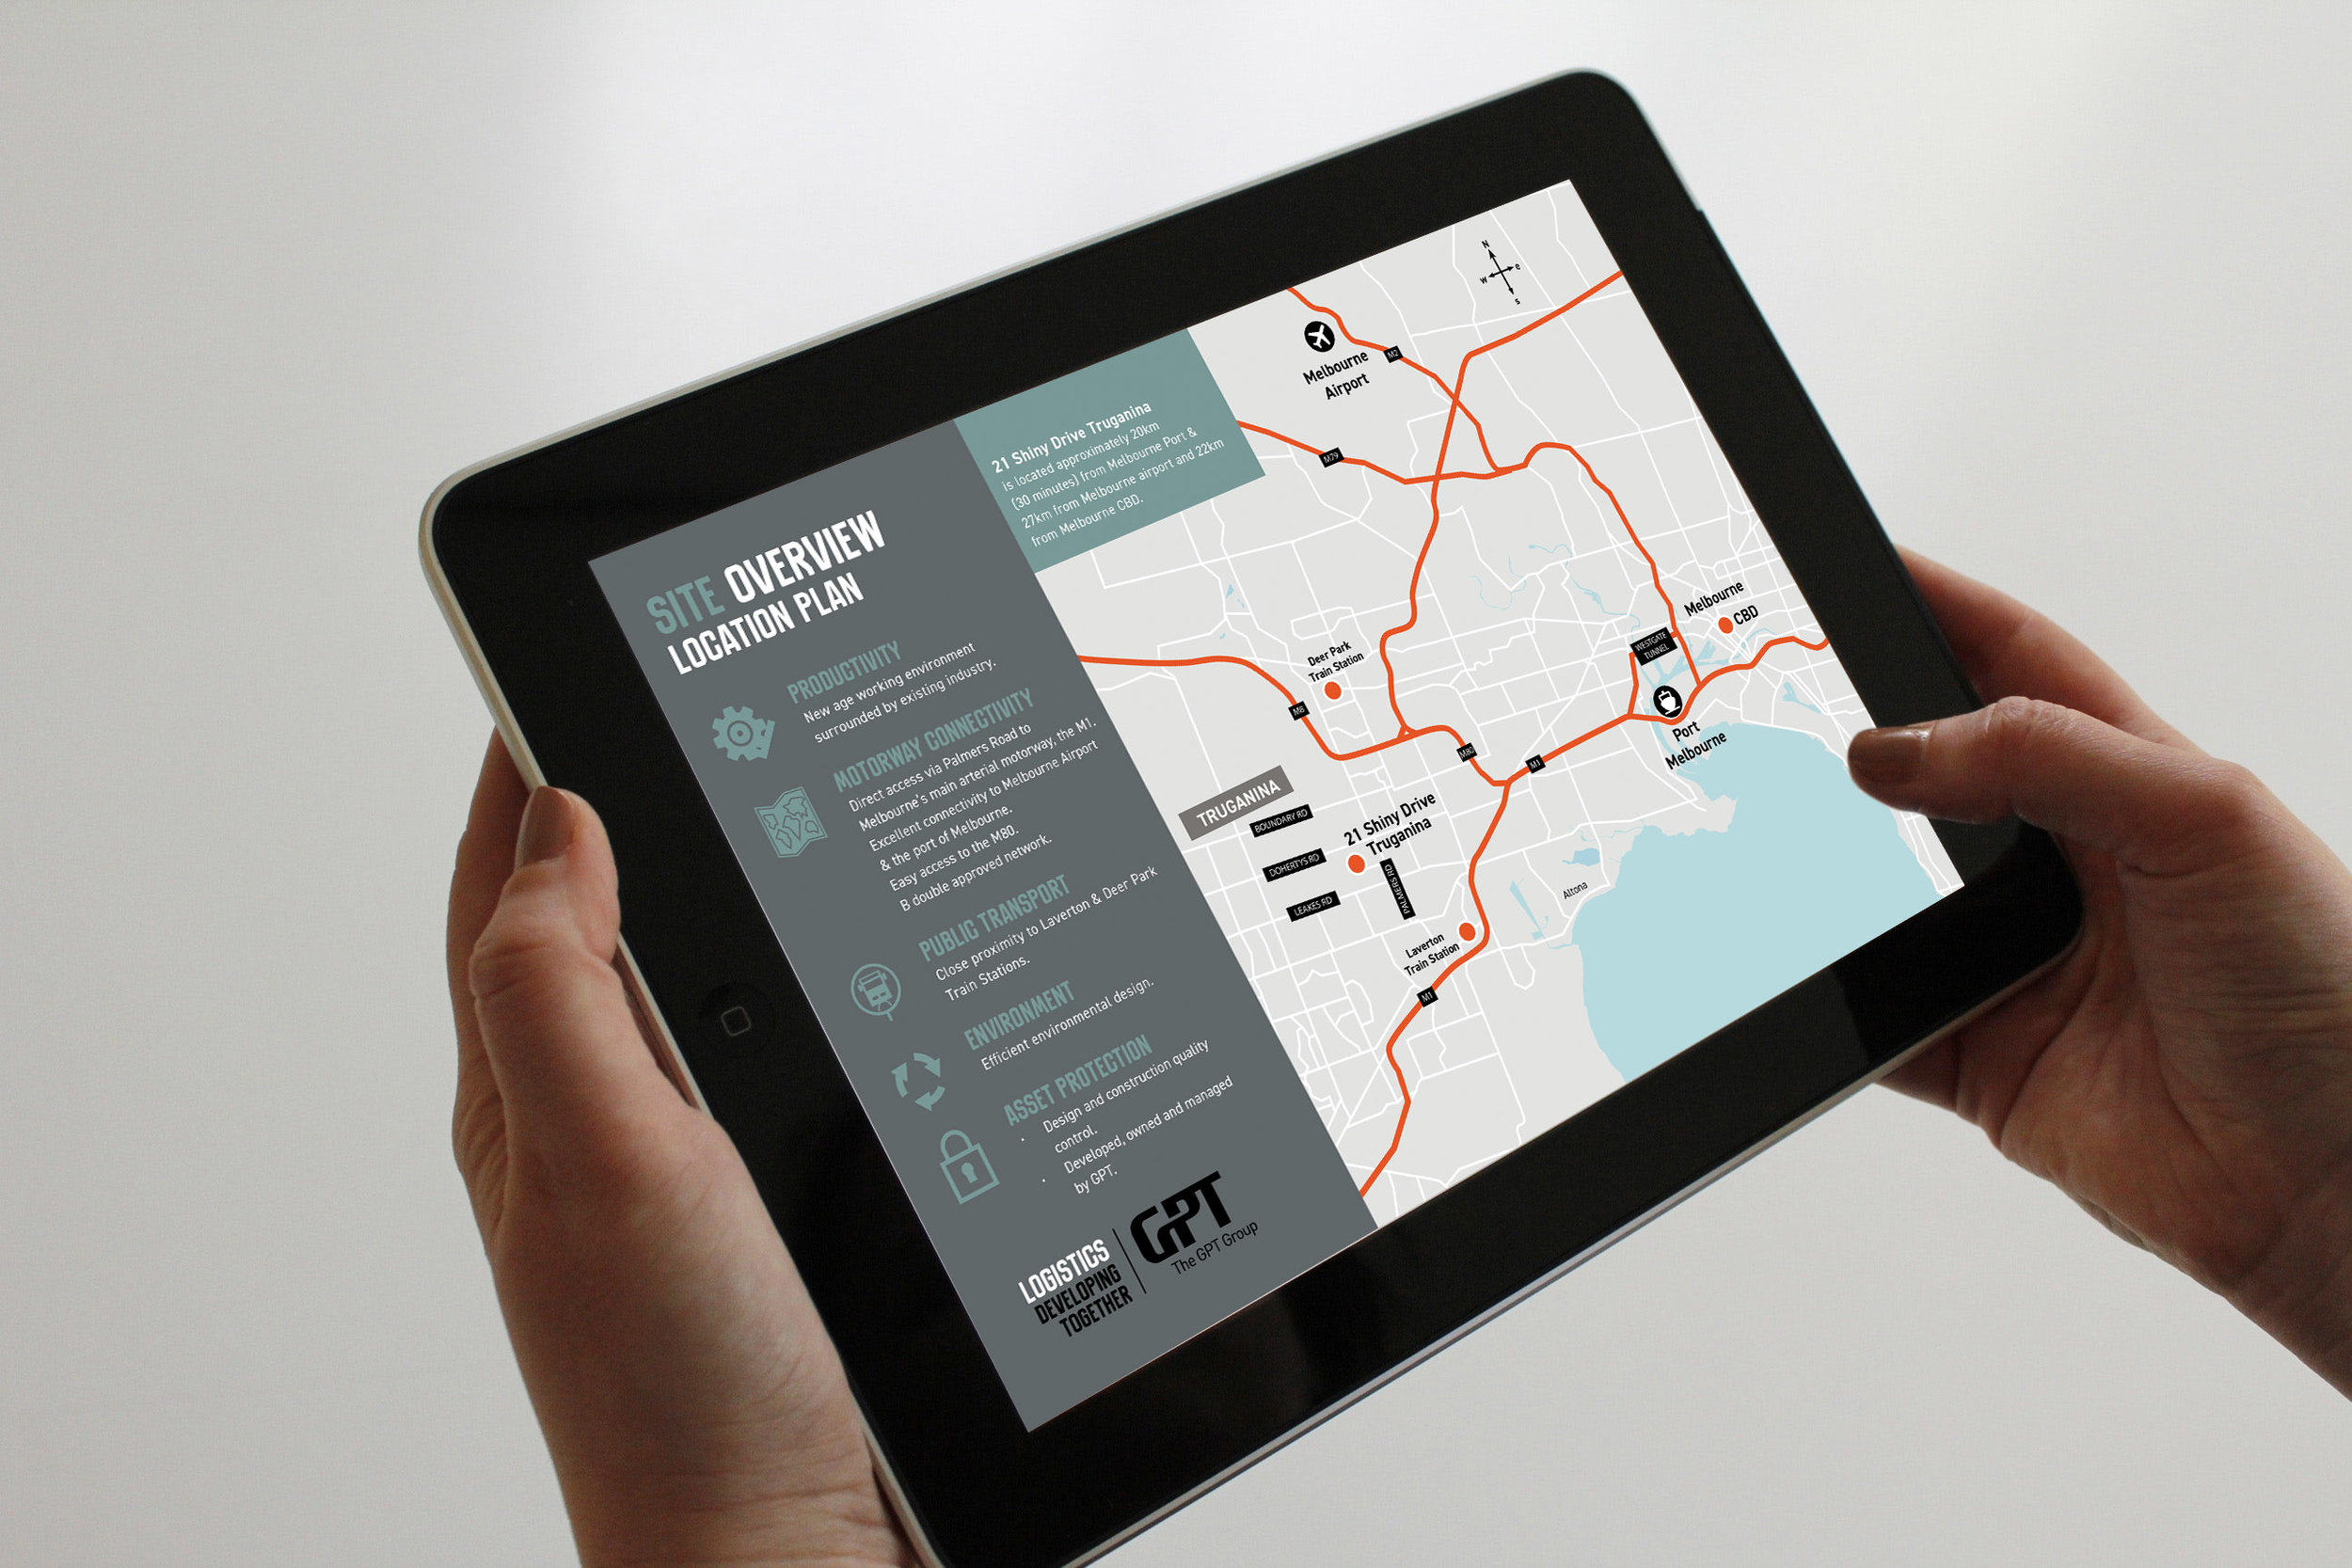 pete-adams-design-logistics-map-illustration-ipad.jpg